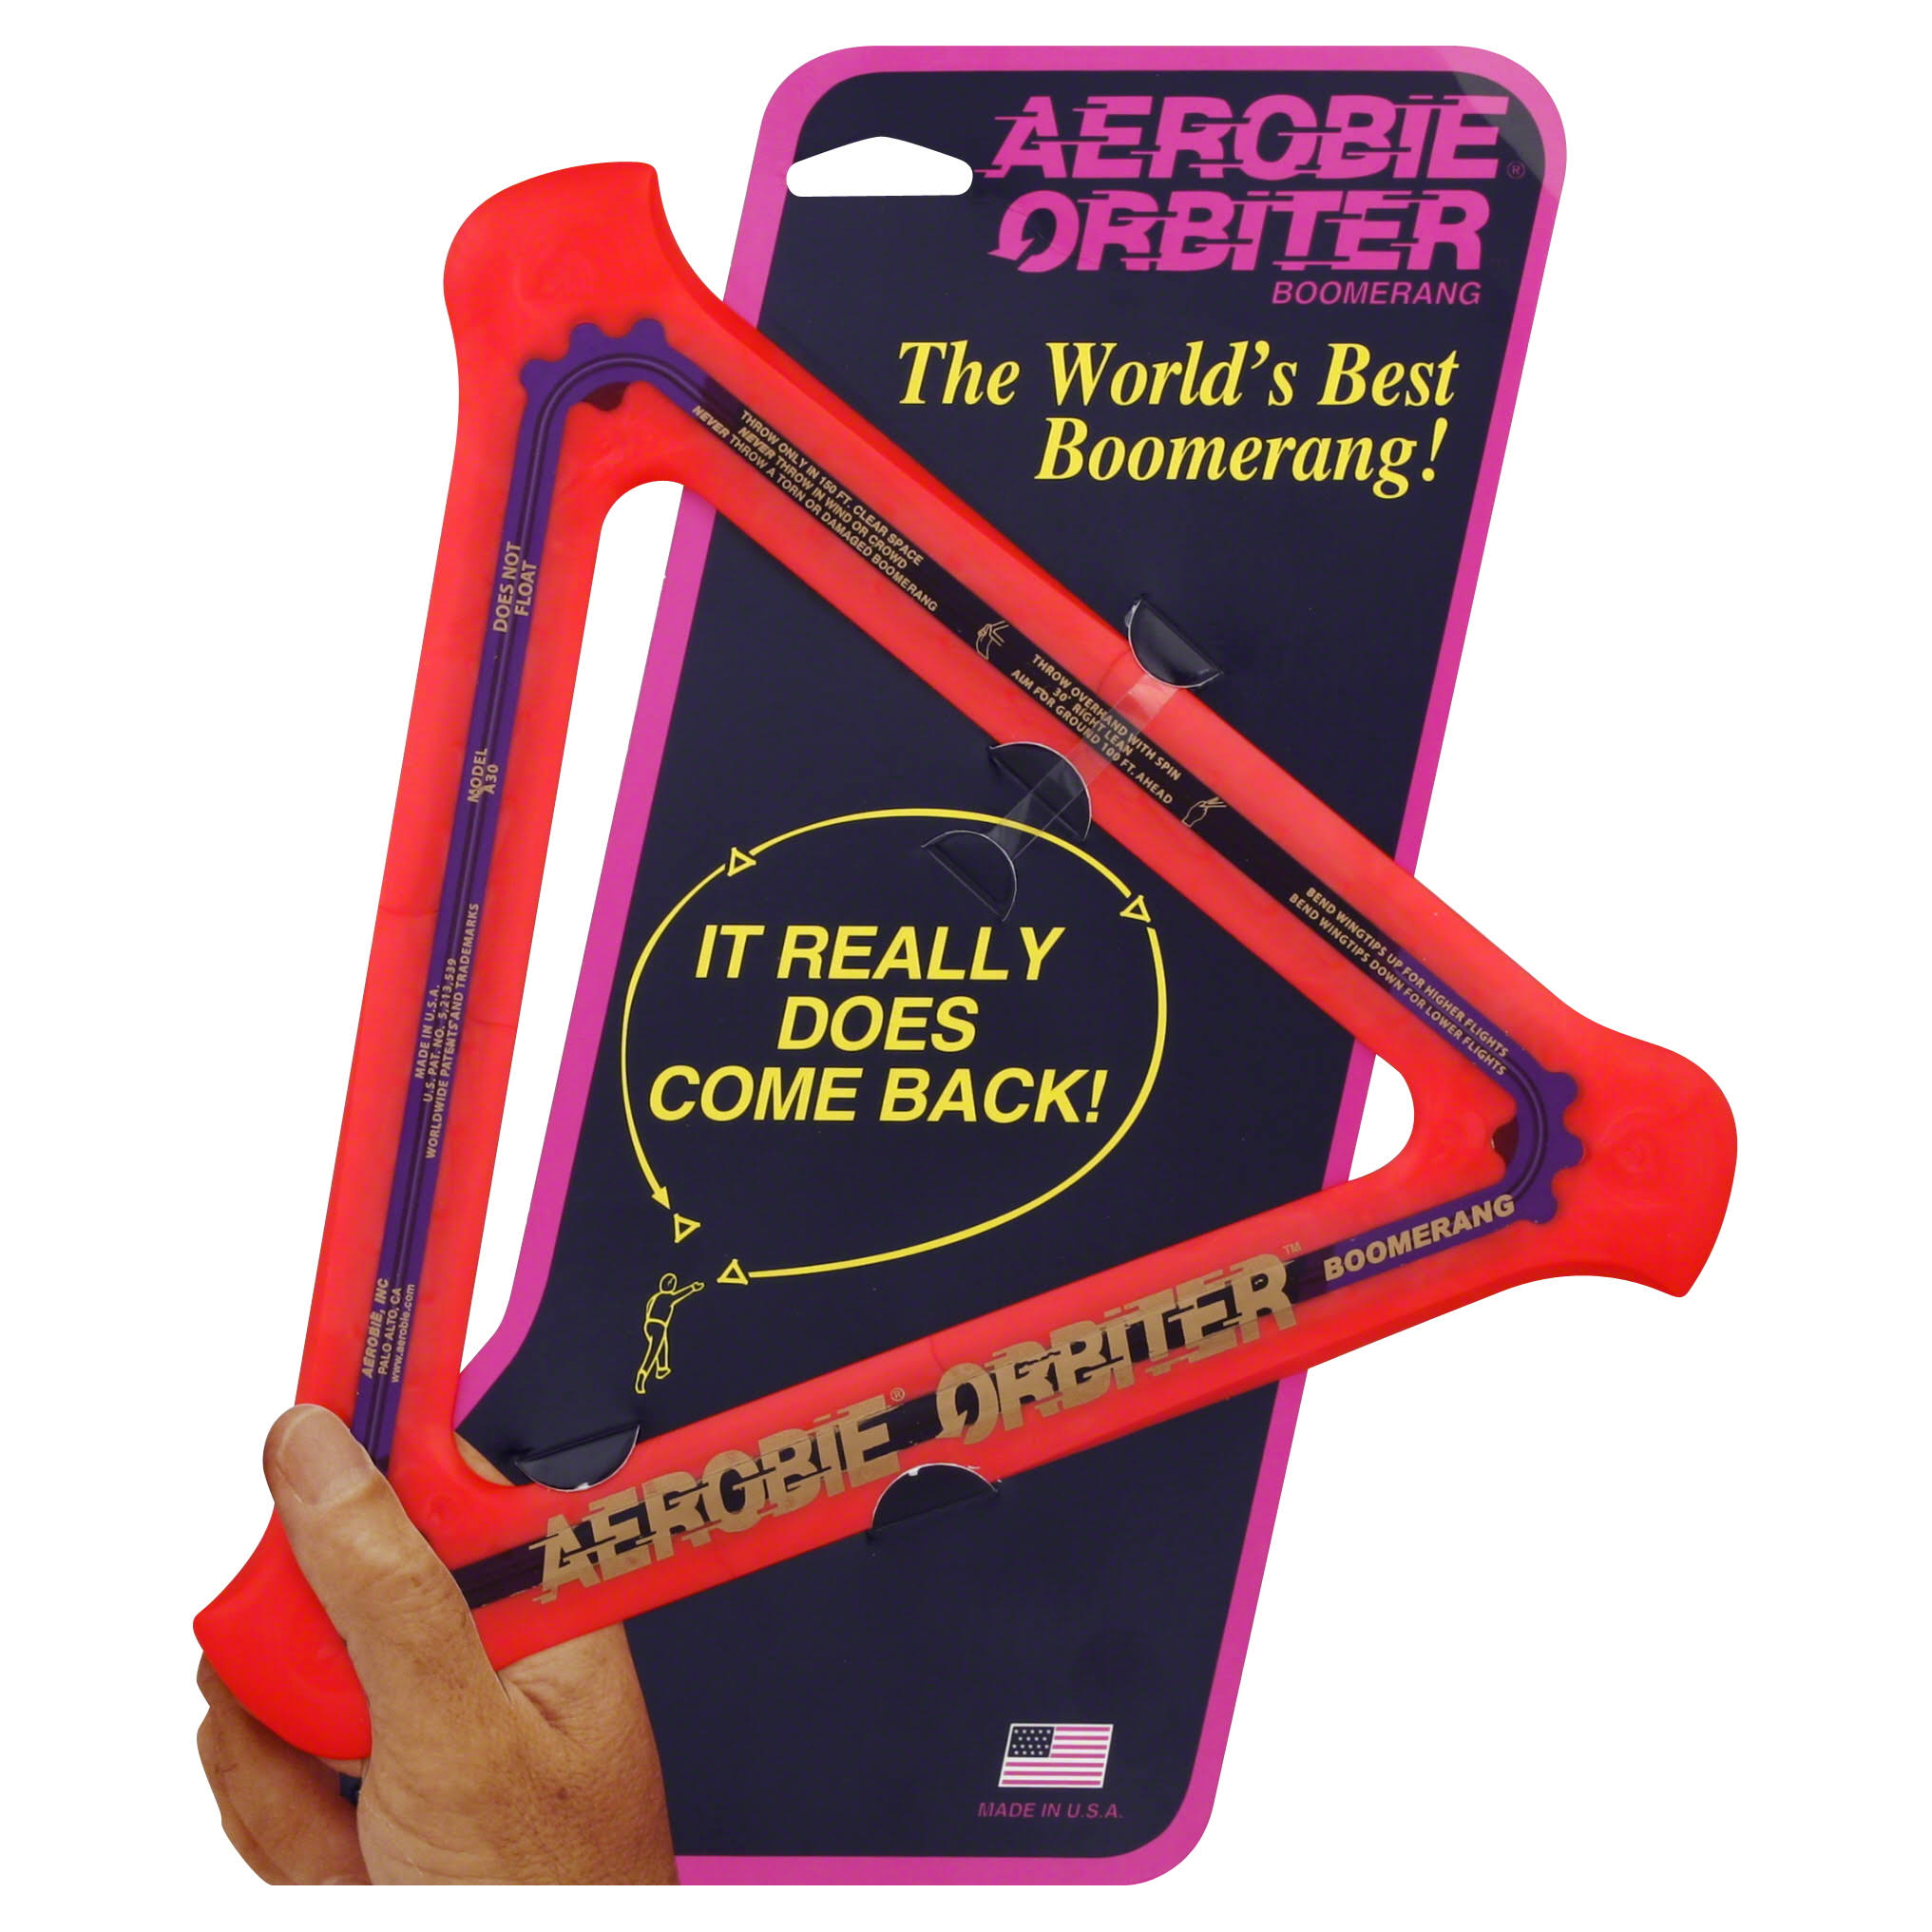 Aerobie Orbiter Boomerang - Assorted Colors